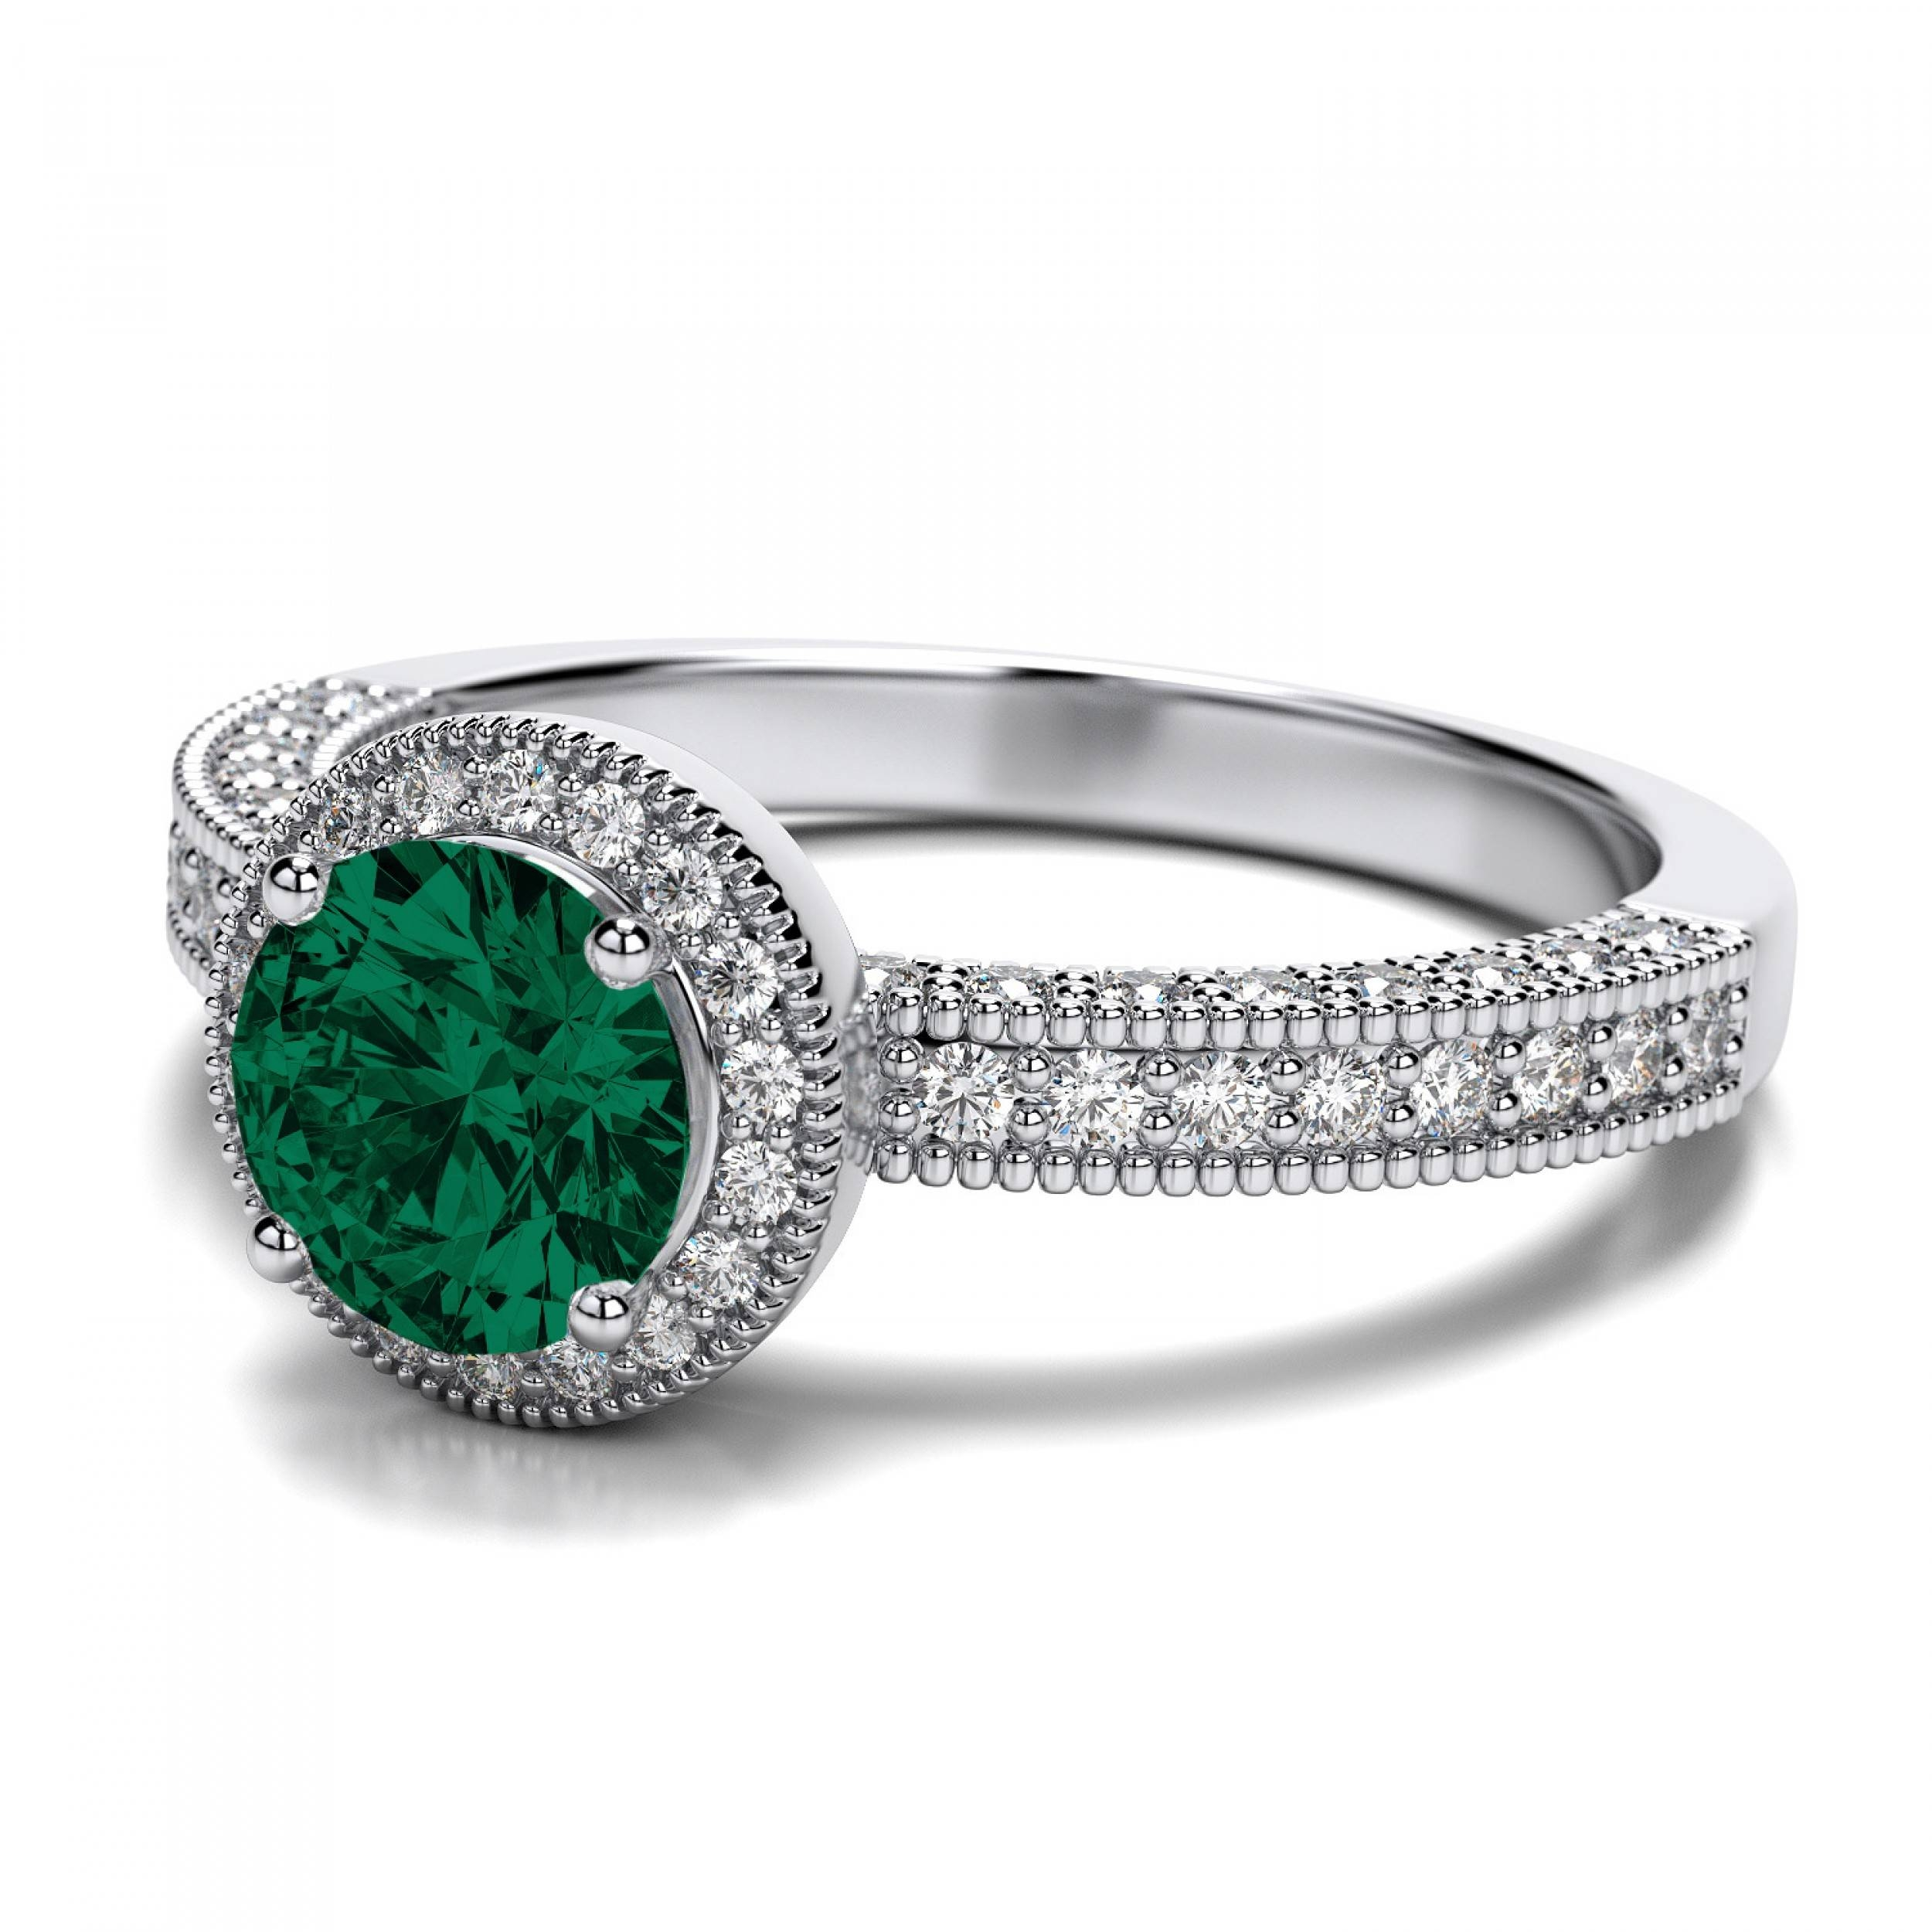 Victorian Vintage Round Emerald Engagement Ring In 14K White Gold Intended For Emerald Engagement Rings White Gold (View 15 of 15)